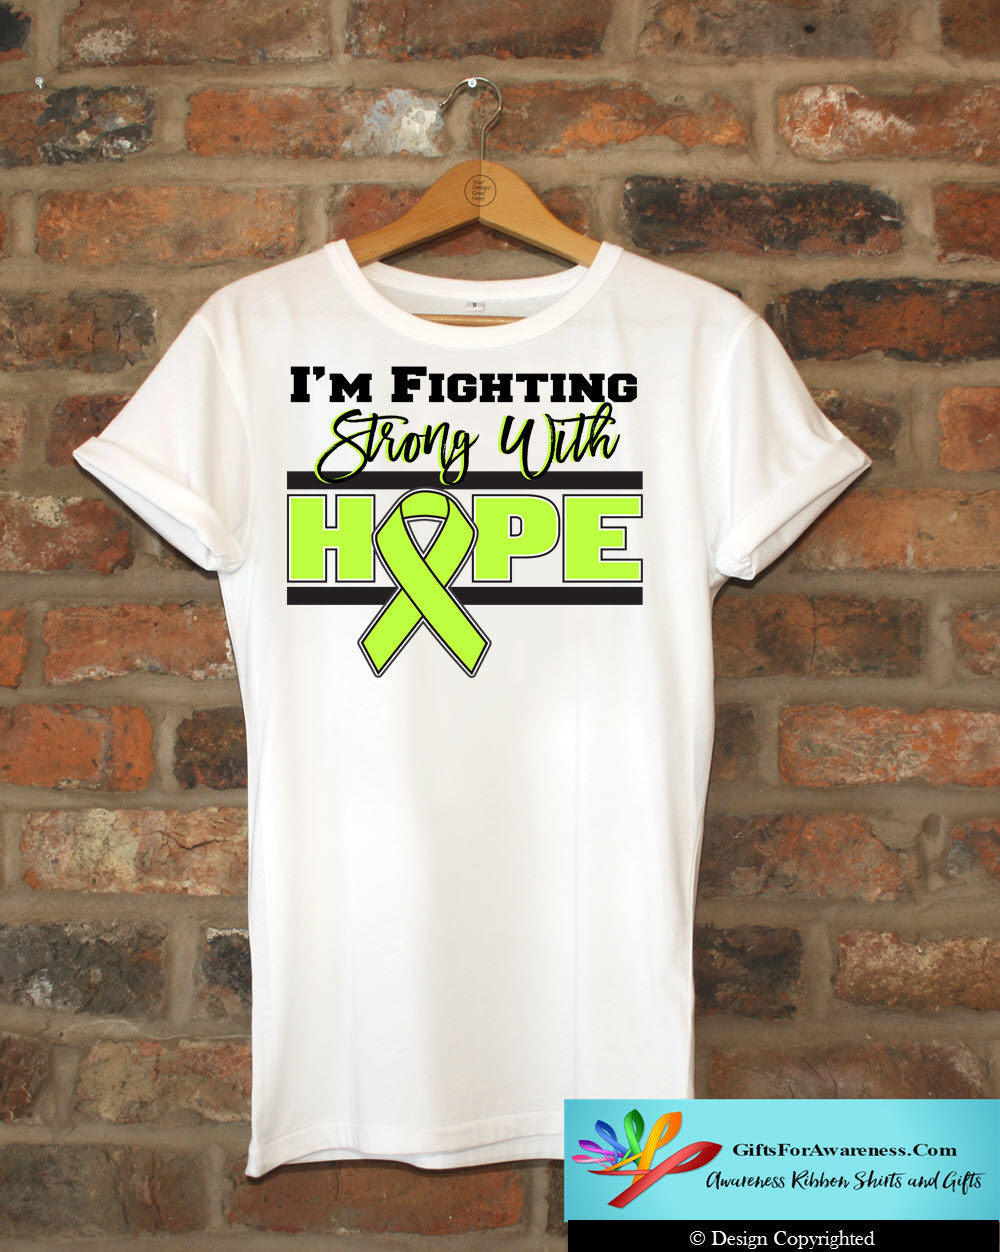 Non-Hodgkins Lymphoma I'm Fighting Strong With Hope Shirts - GiftsForAwareness